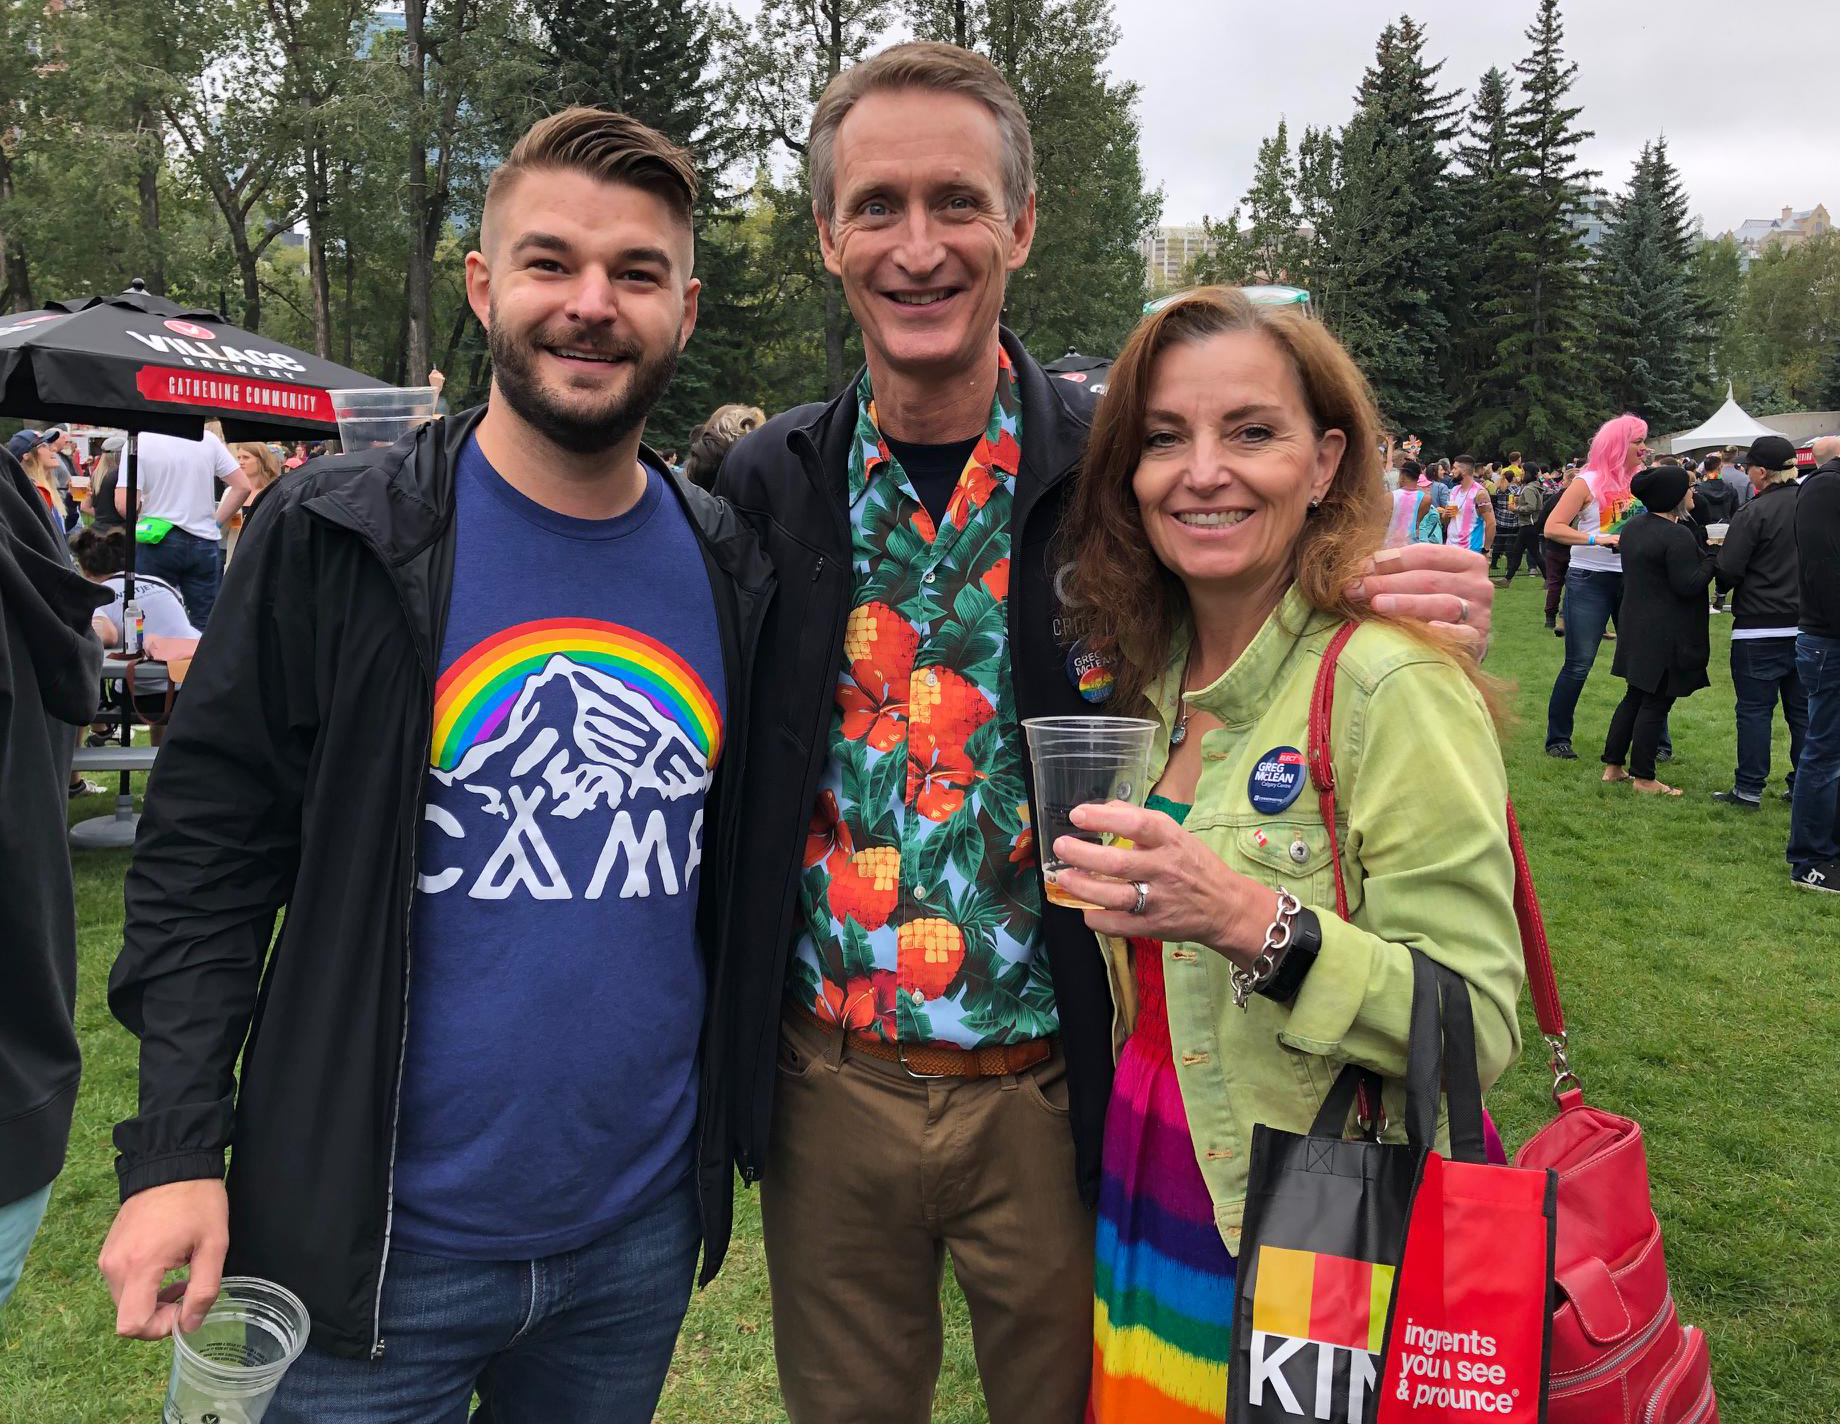 Pride Parade Day isn't complete without a stop at the beer gardens. Ruth and I are pictured with Chris Adams.